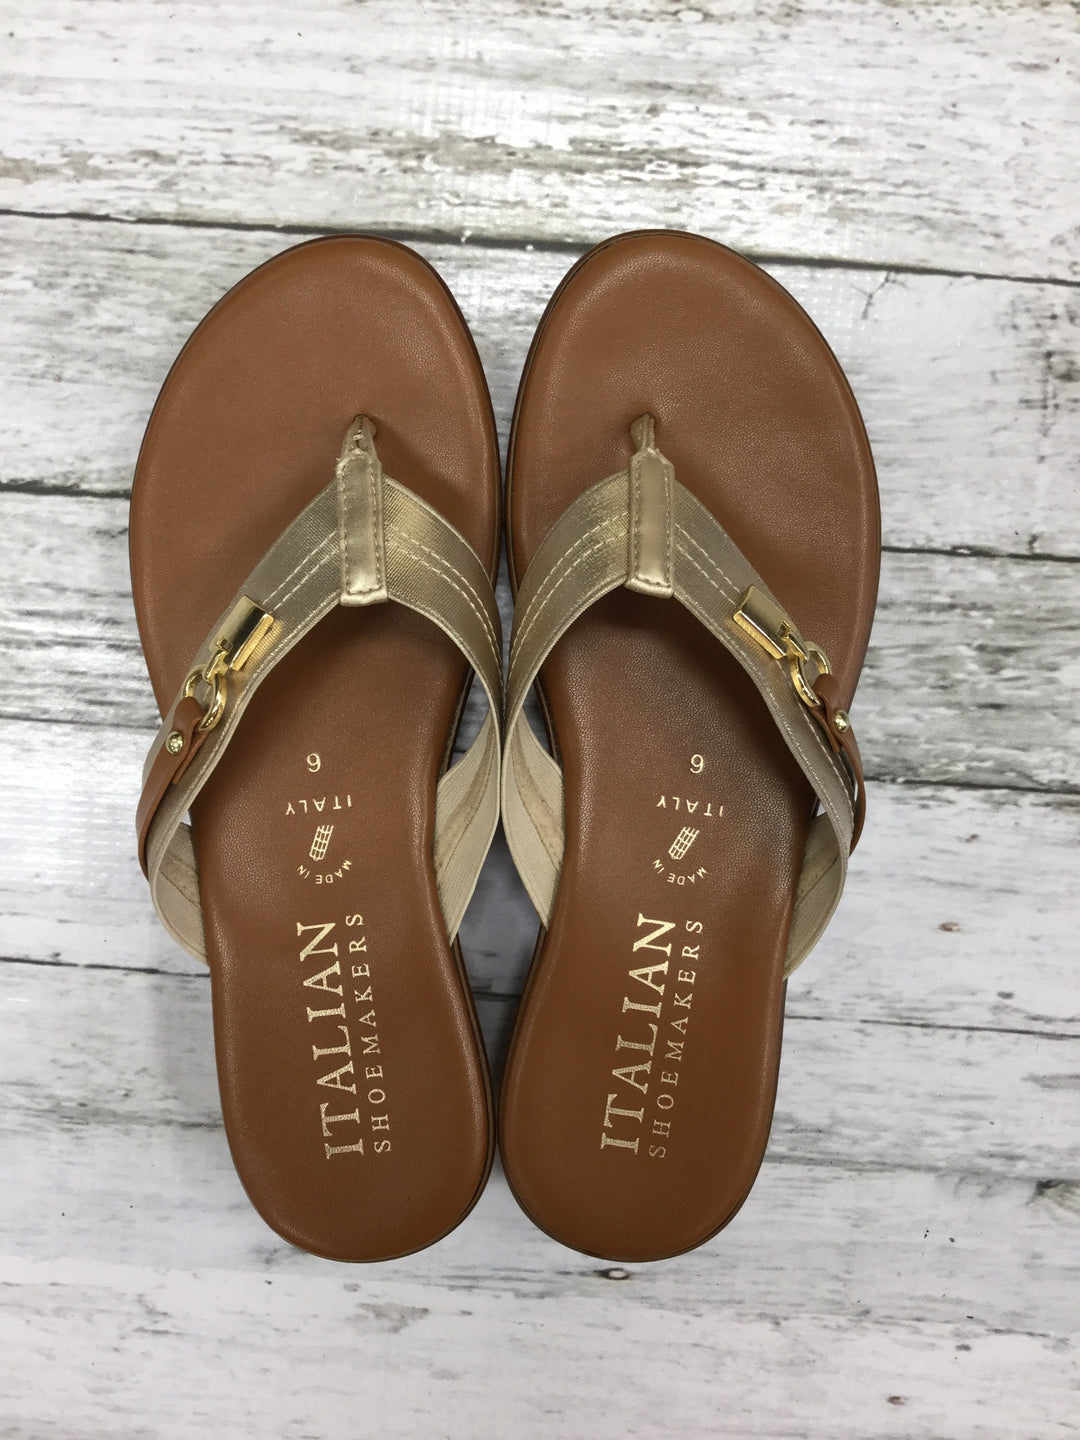 Primary Photo - brand: italian shoemakers , style: sandals , color: gold , size: 6 , sku: 127-3371-41060